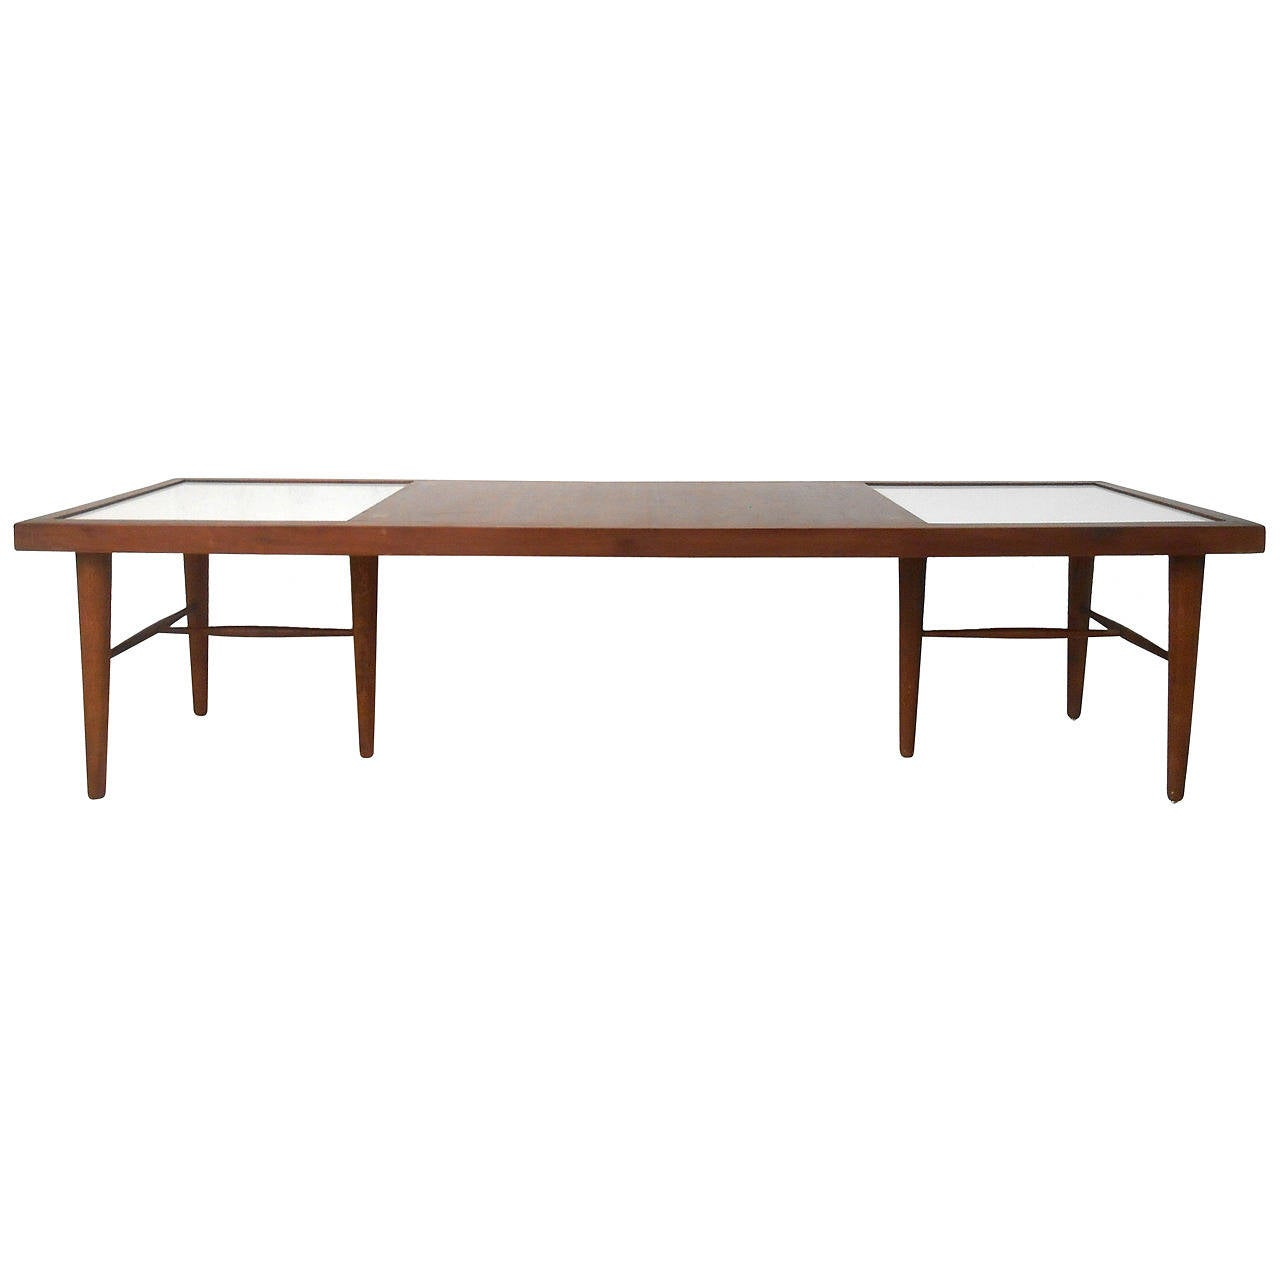 American Of Martinsville Coffee And Cocktail Tables For Sale At - Coffee table with tile inlay